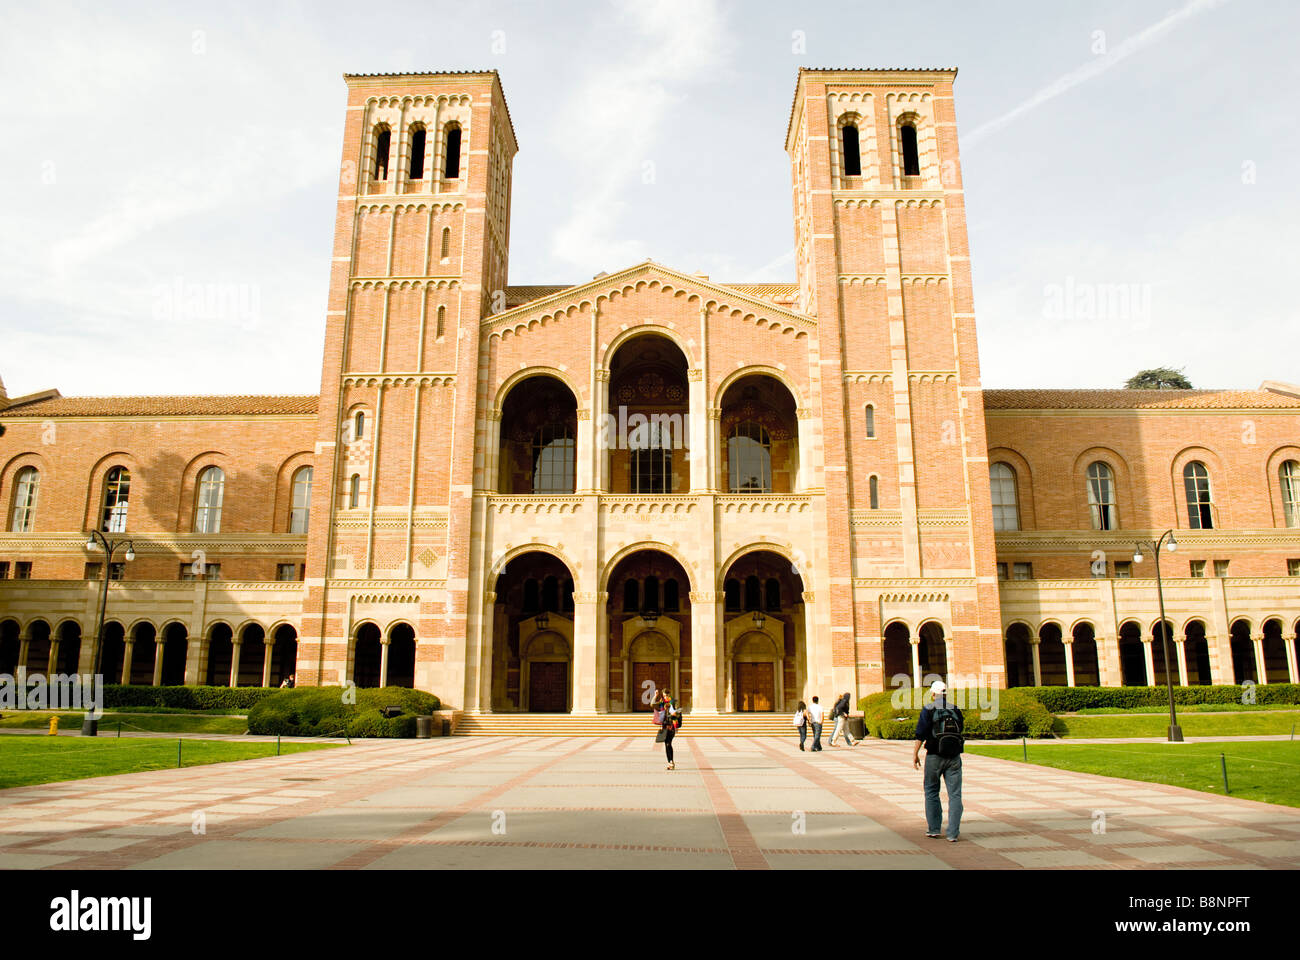 Royce Hall, UCLA on a bright sunny day - Stock Image